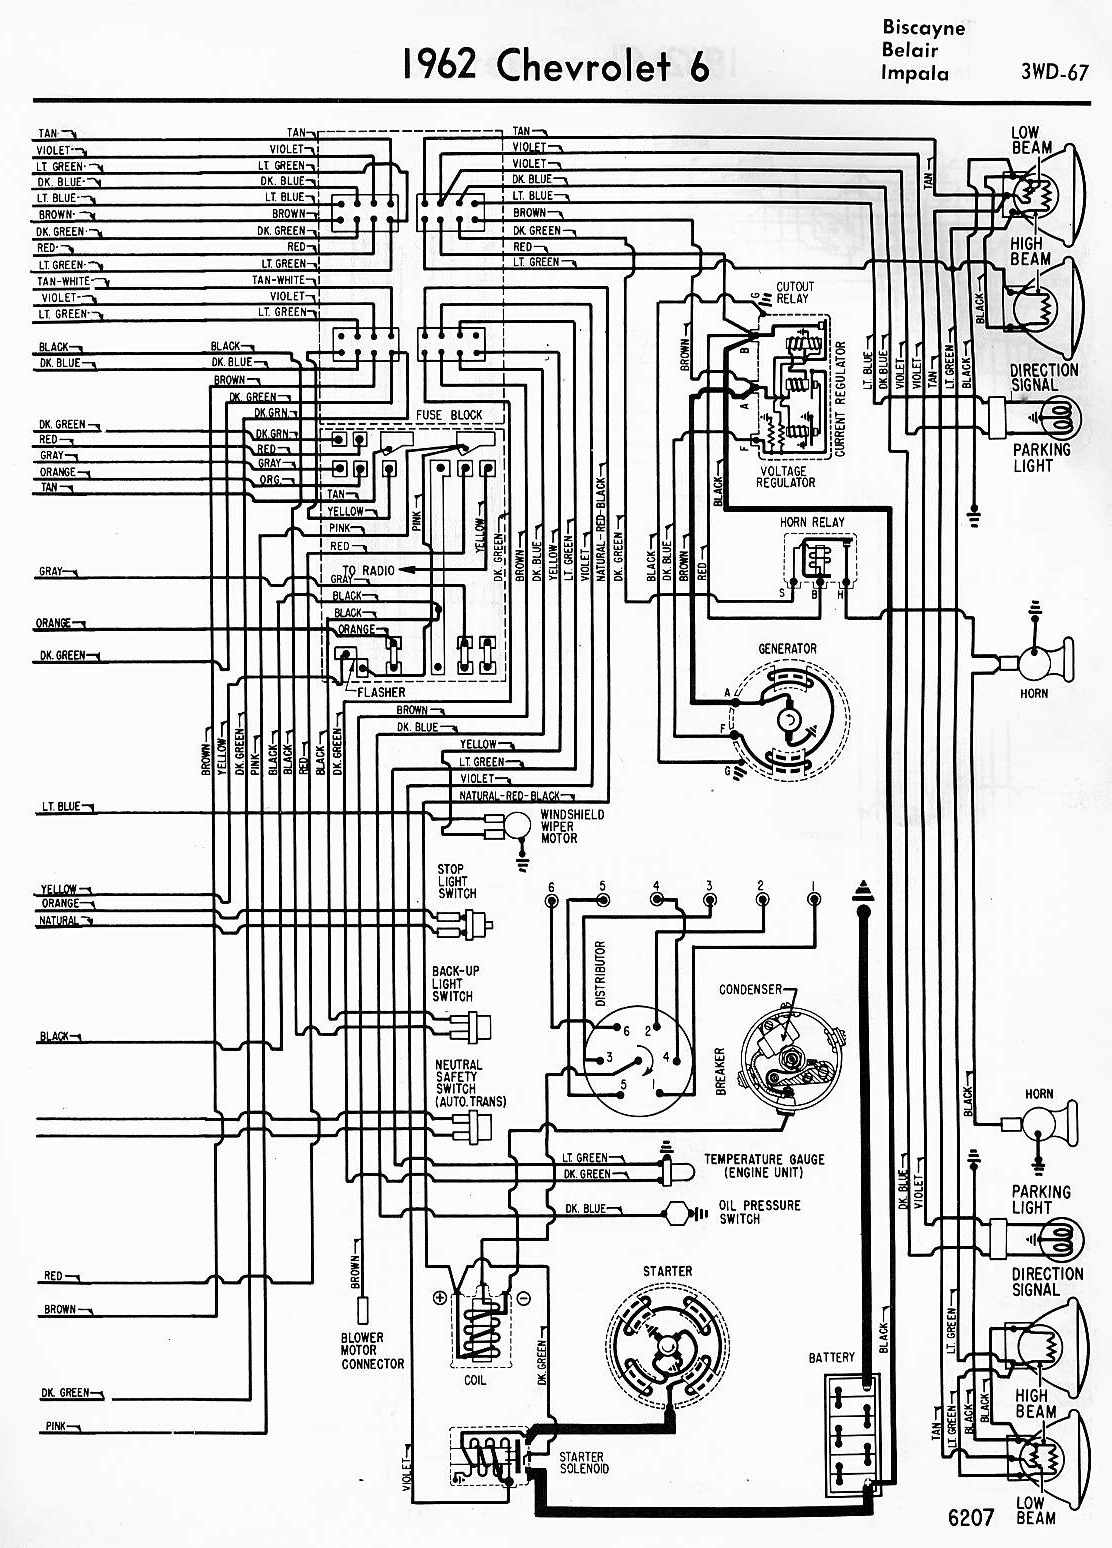 Electrical Wiring Diagram Of Chevrolet on 1979 Corvette Headlight Vacuum Diagram